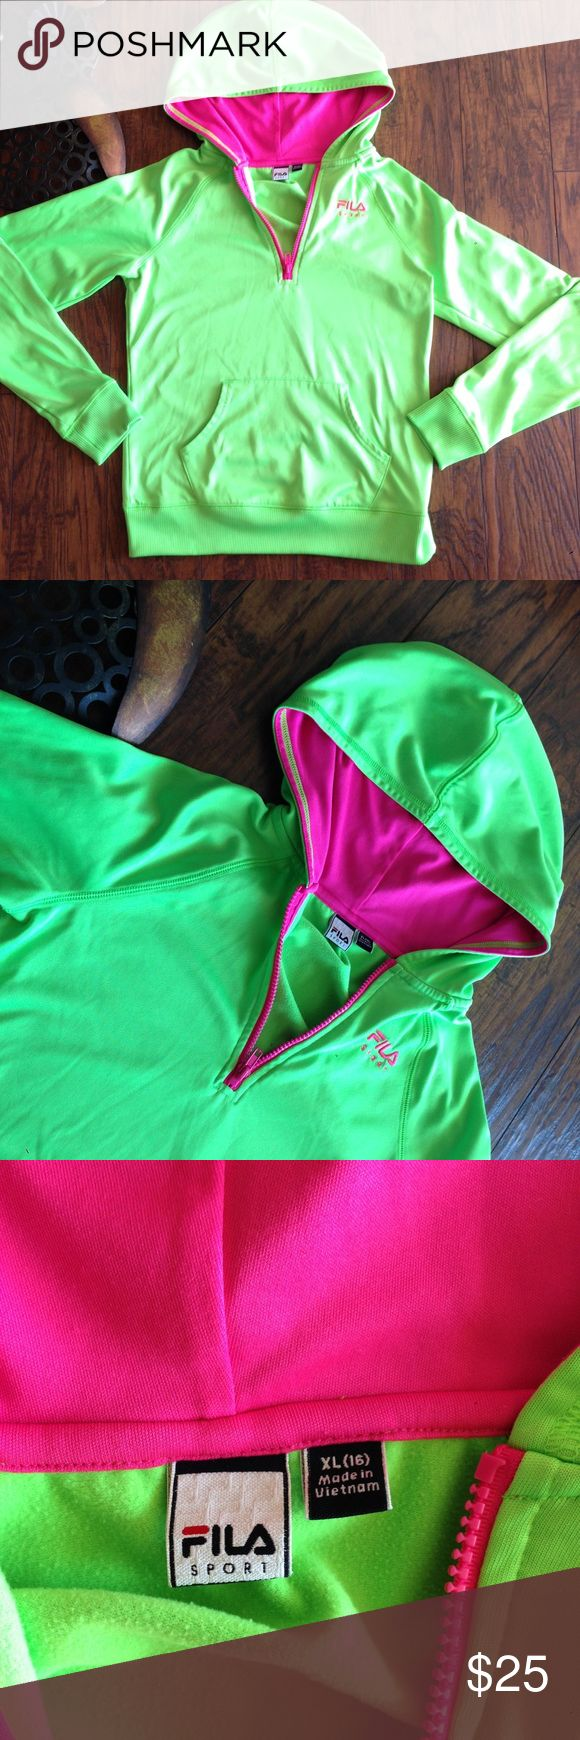 Girl fila zip up hoodie lime green pink size 16 Super cute girls size 16 zip up hoodie and lime green with hot pink lining Fila Shirts & Tops Sweatshirts & Hoodies